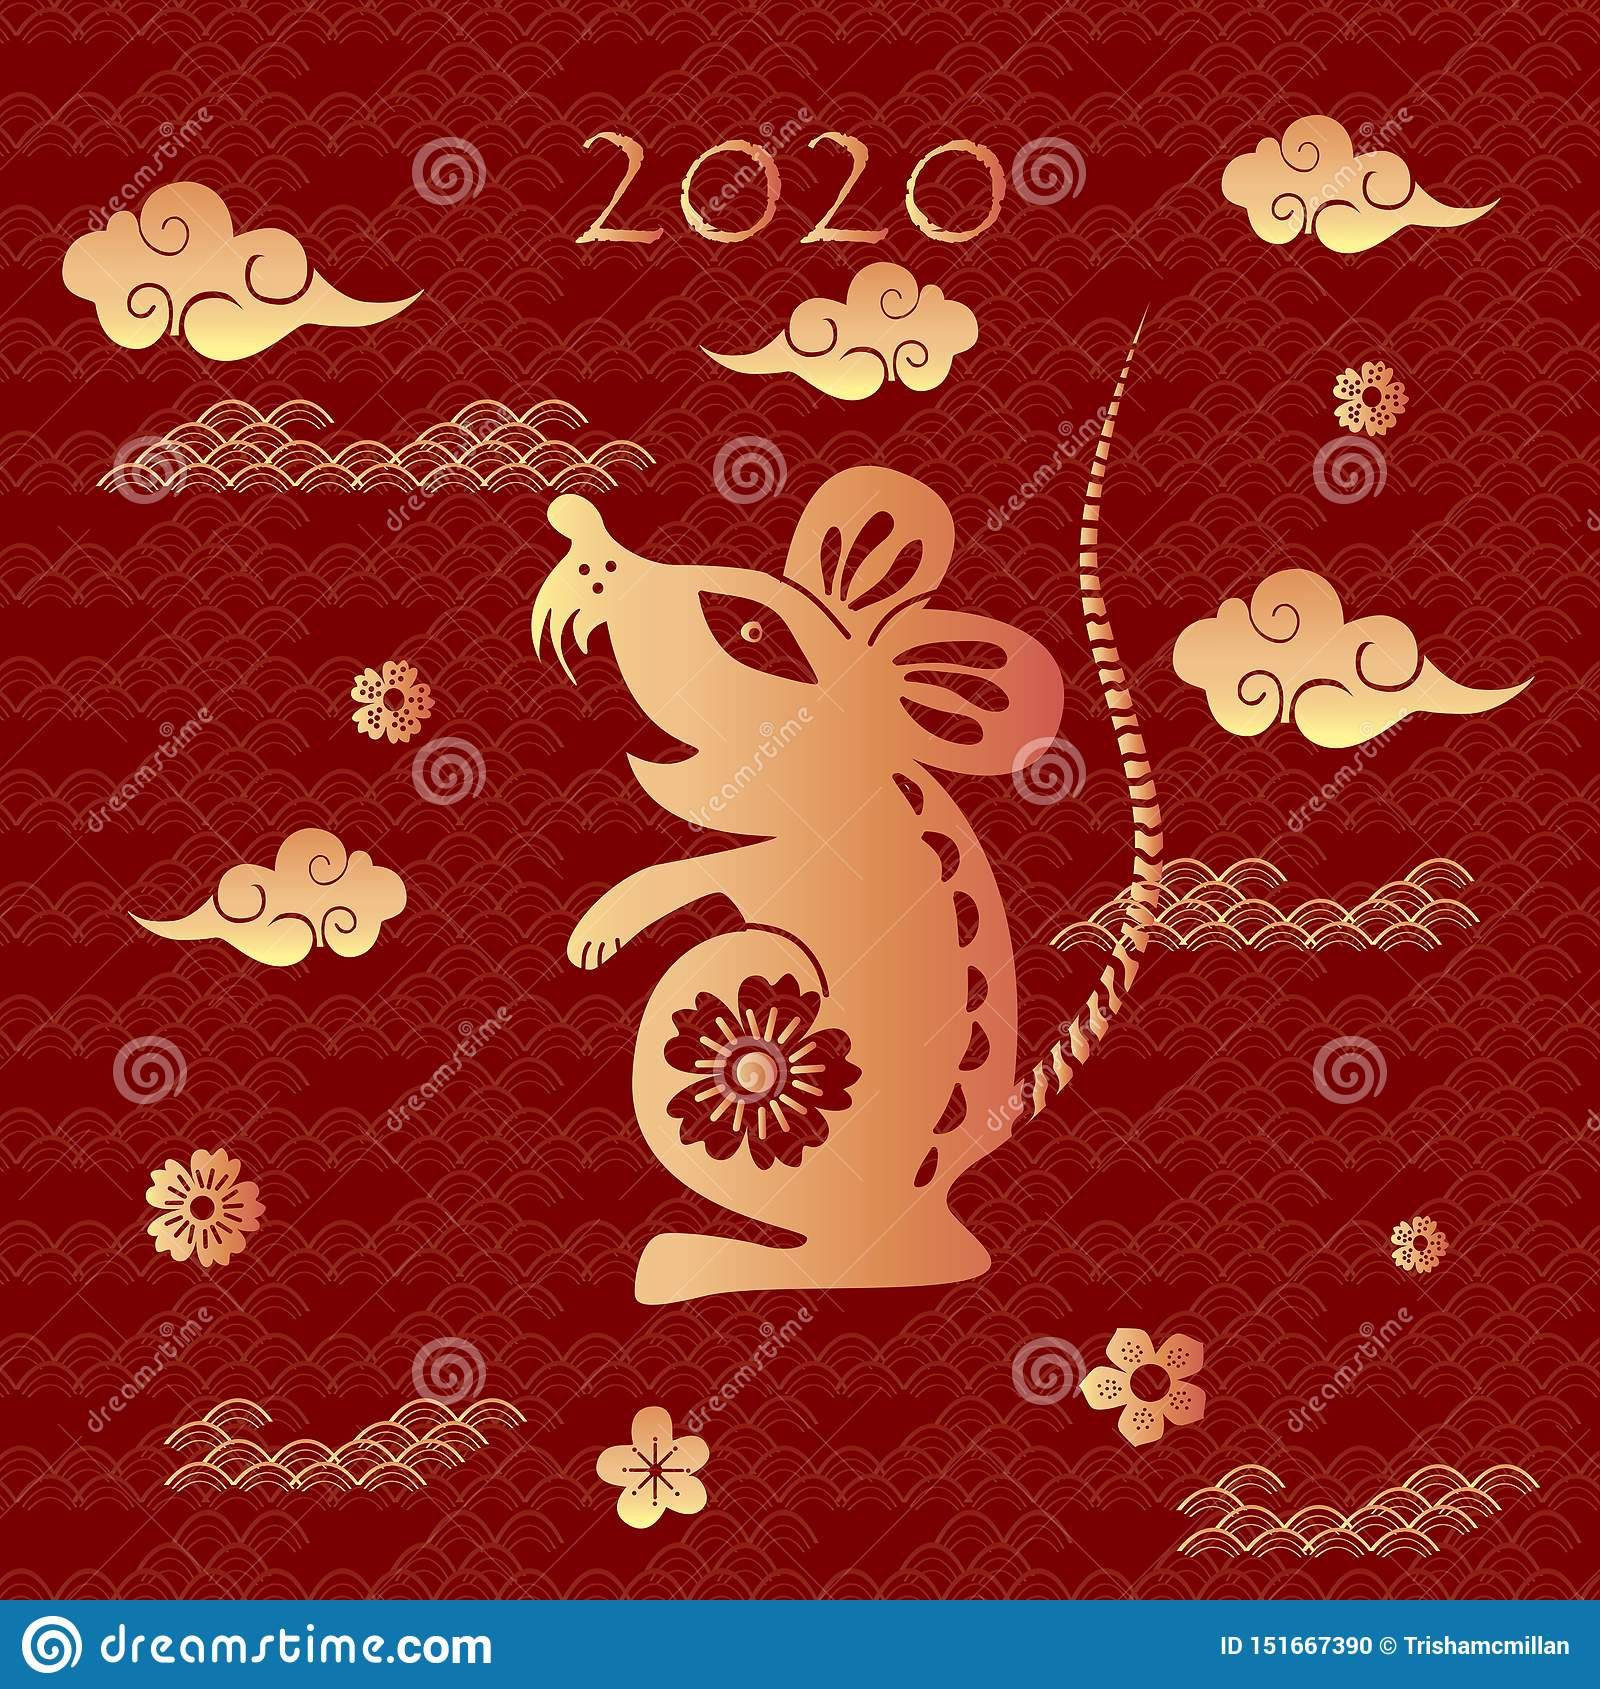 2020 Chinese New Year Date.Chinese Zodiac Sign Of The Rat With The Date 2020 Chinese